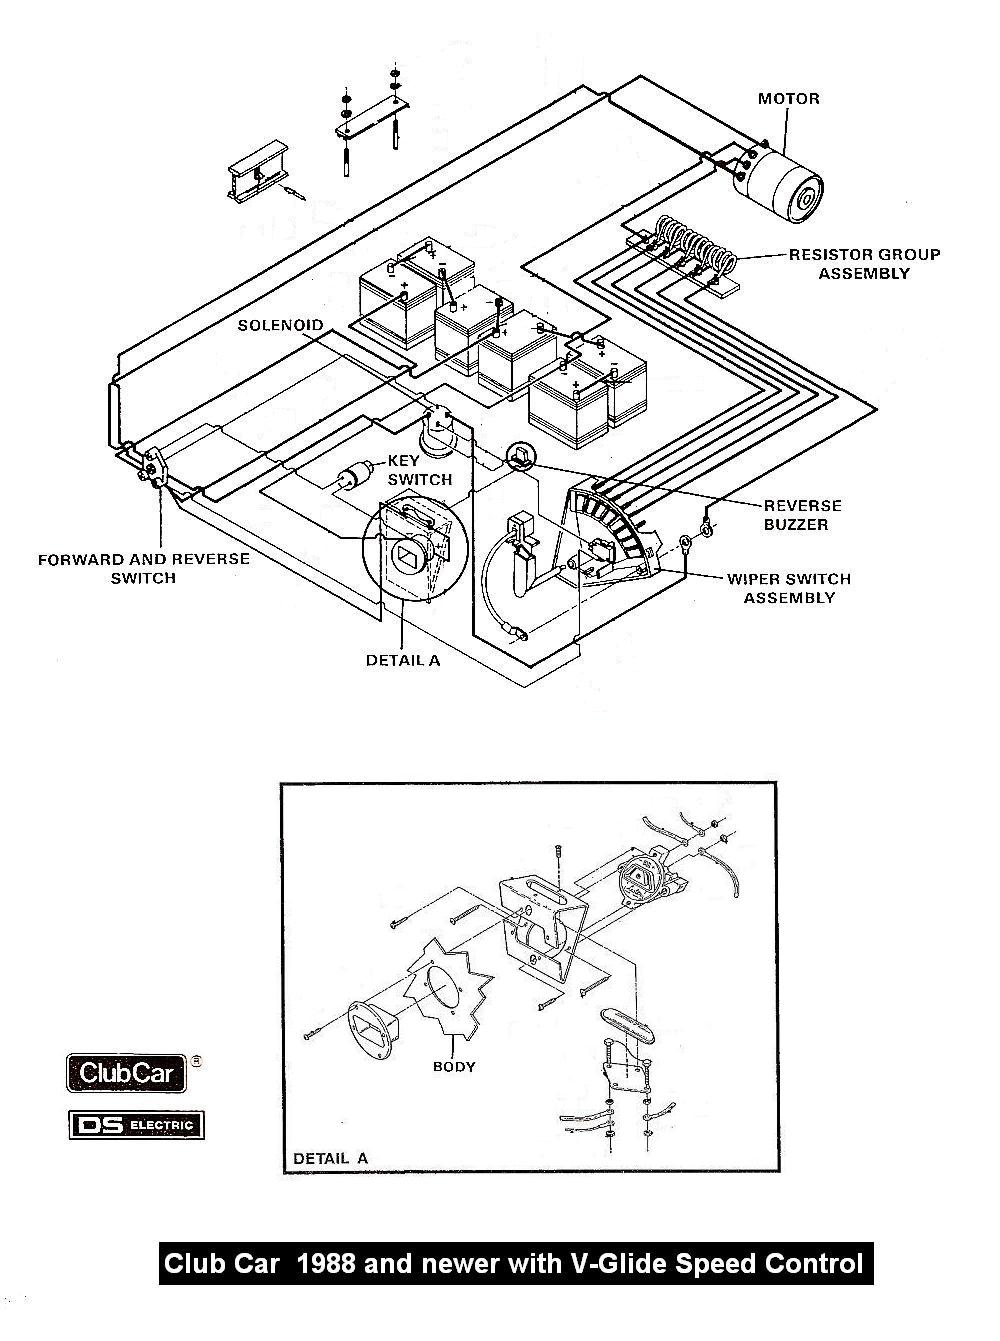 2004 Ez Go Wiring Diagram | Wiring Liry M Ezgo Wiring Diagram on